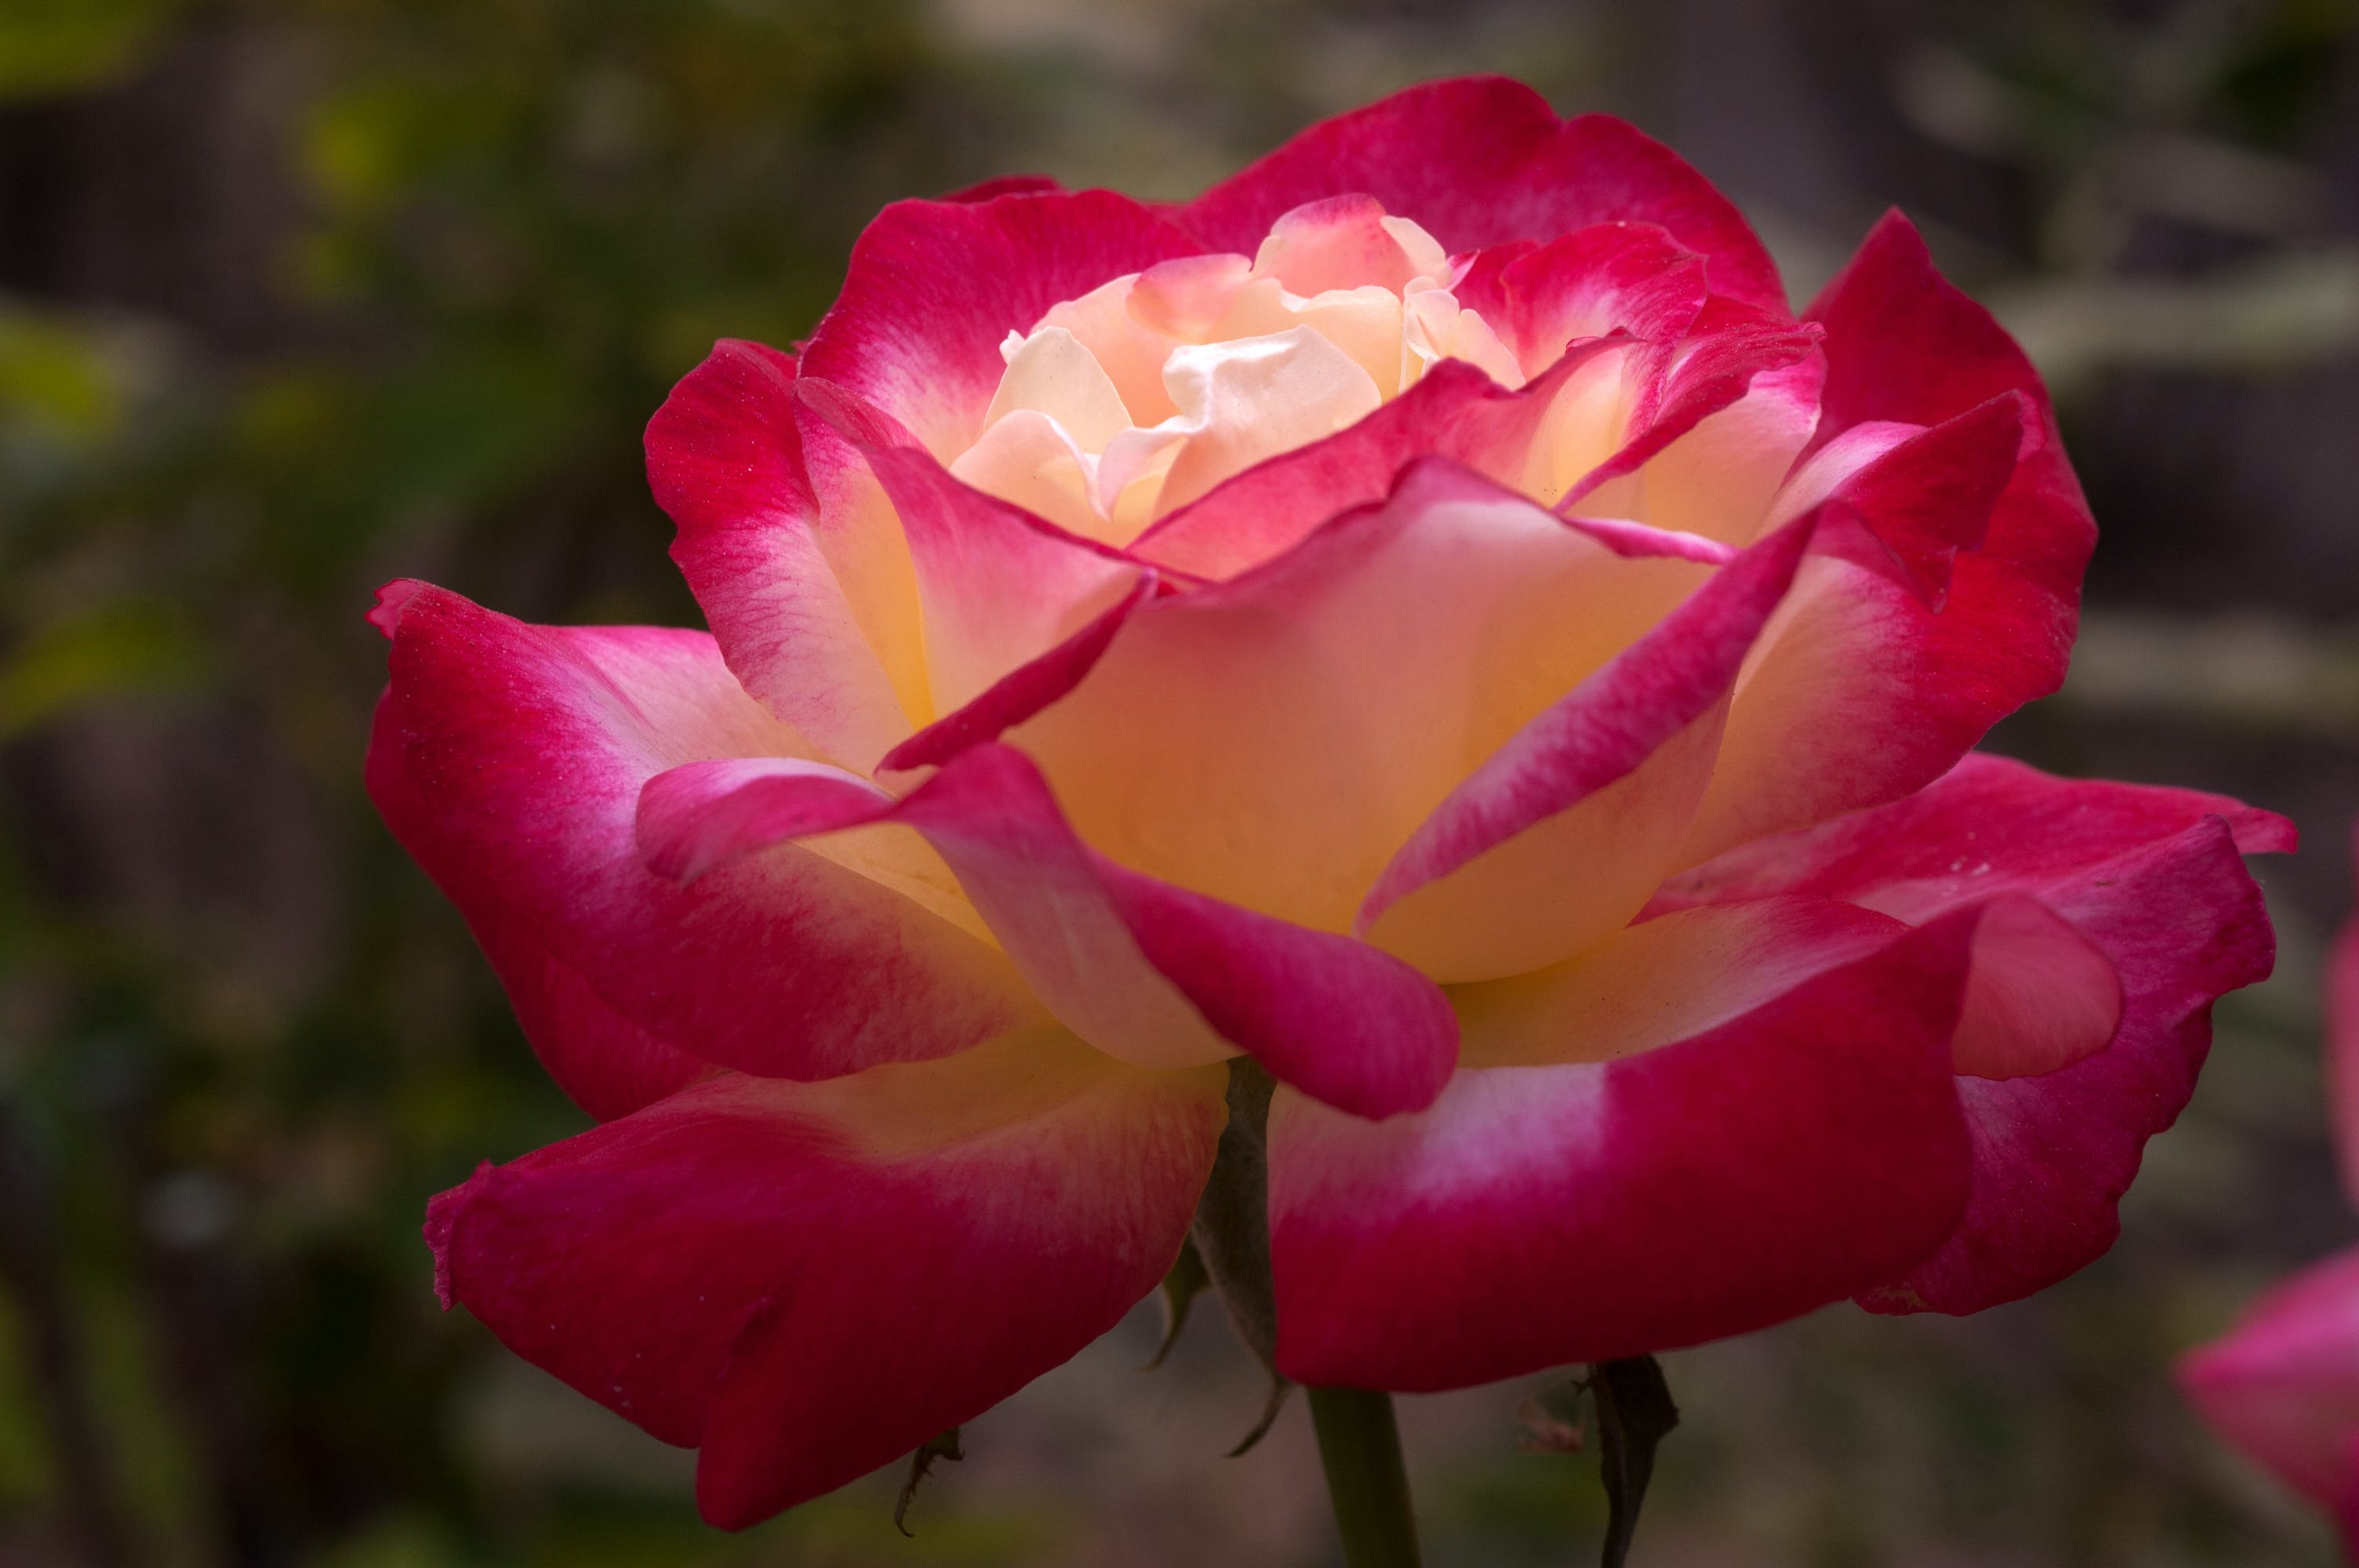 Free stock photo of Rose Multicolored